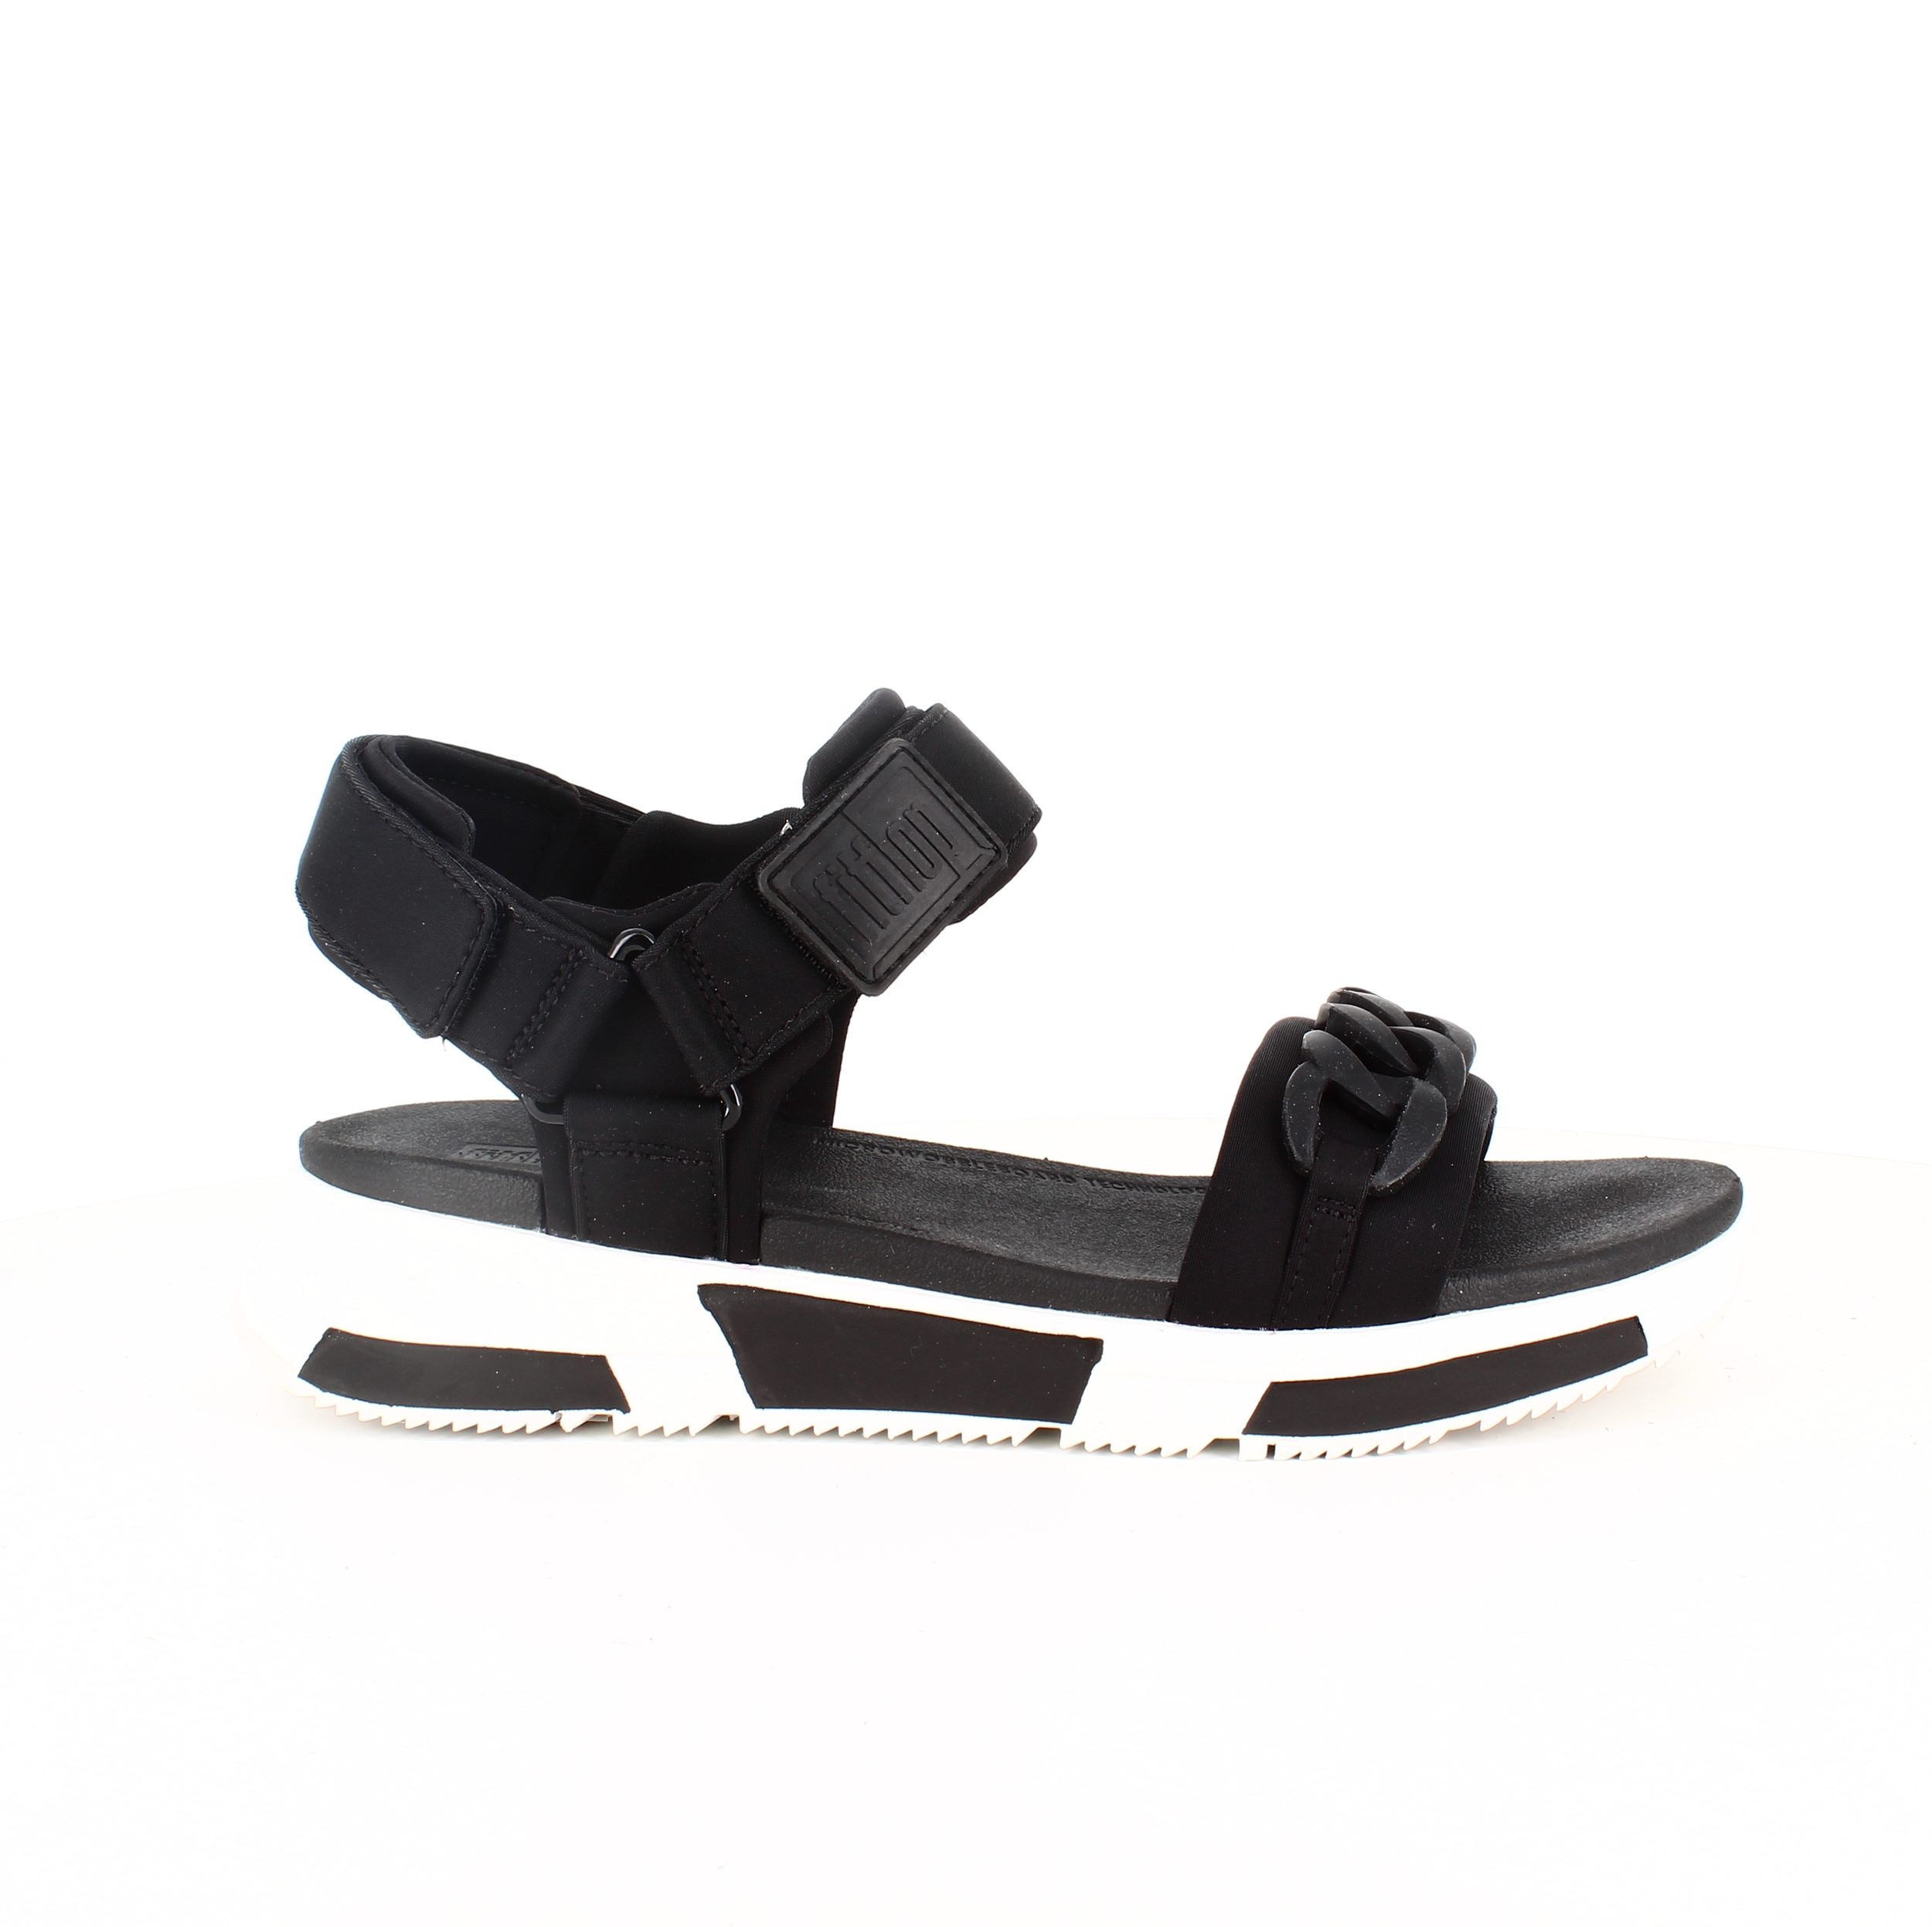 Image of   Heda Back strap sandal fra Fit flop - 41